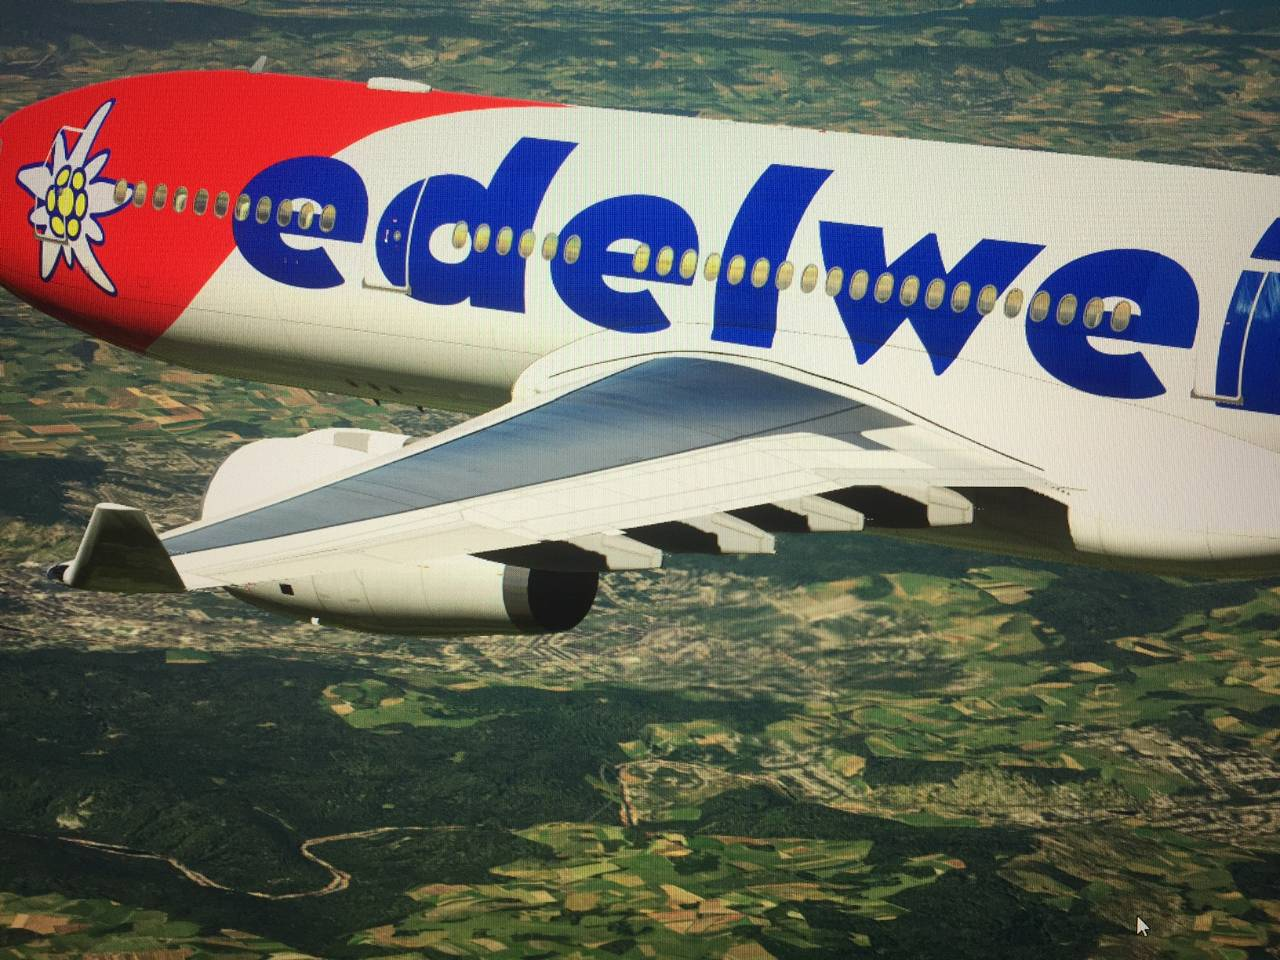 JD330 Airliner ver 2 1r1 WIN/MAC 64 bit (X-Plane 11) (Page 3